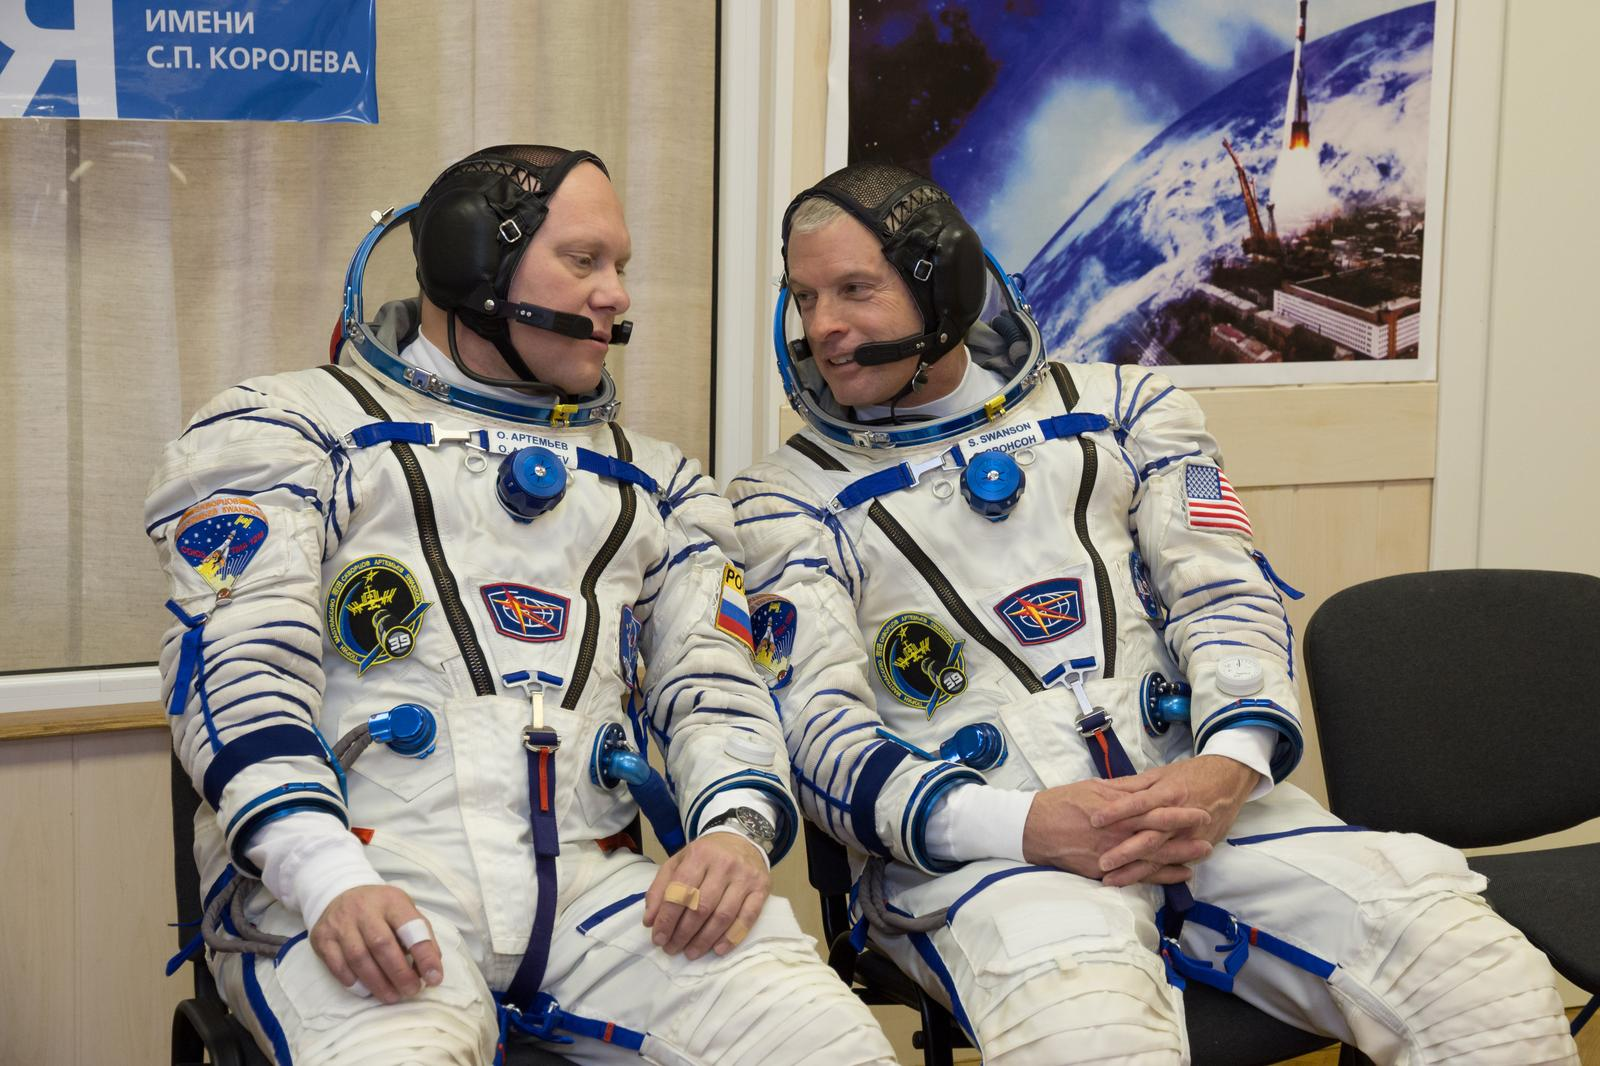 """2014-03-14-12-43-15[1]In the Integration Facility at the Baikonur Cosmodrome in Kazakhstan, Expedition 39/40 Flight Engineer Steve Swanson of NASA (right) shares a word with crewmate and Flight Engineer Oleg Artemyev of the Russian Federal Space Agency (Roscosmos) during a """"fit check"""" dress rehearsal March 14 that is part of the crew's final training. Swanson, Artemyev and Soyuz Commander Alexander Skvortsov of Roscosmos are scheduled to launch to the International Space Station March 26 (Kazakh time) for the start of a six-month mission.NASA/Victor Zelentsov"""